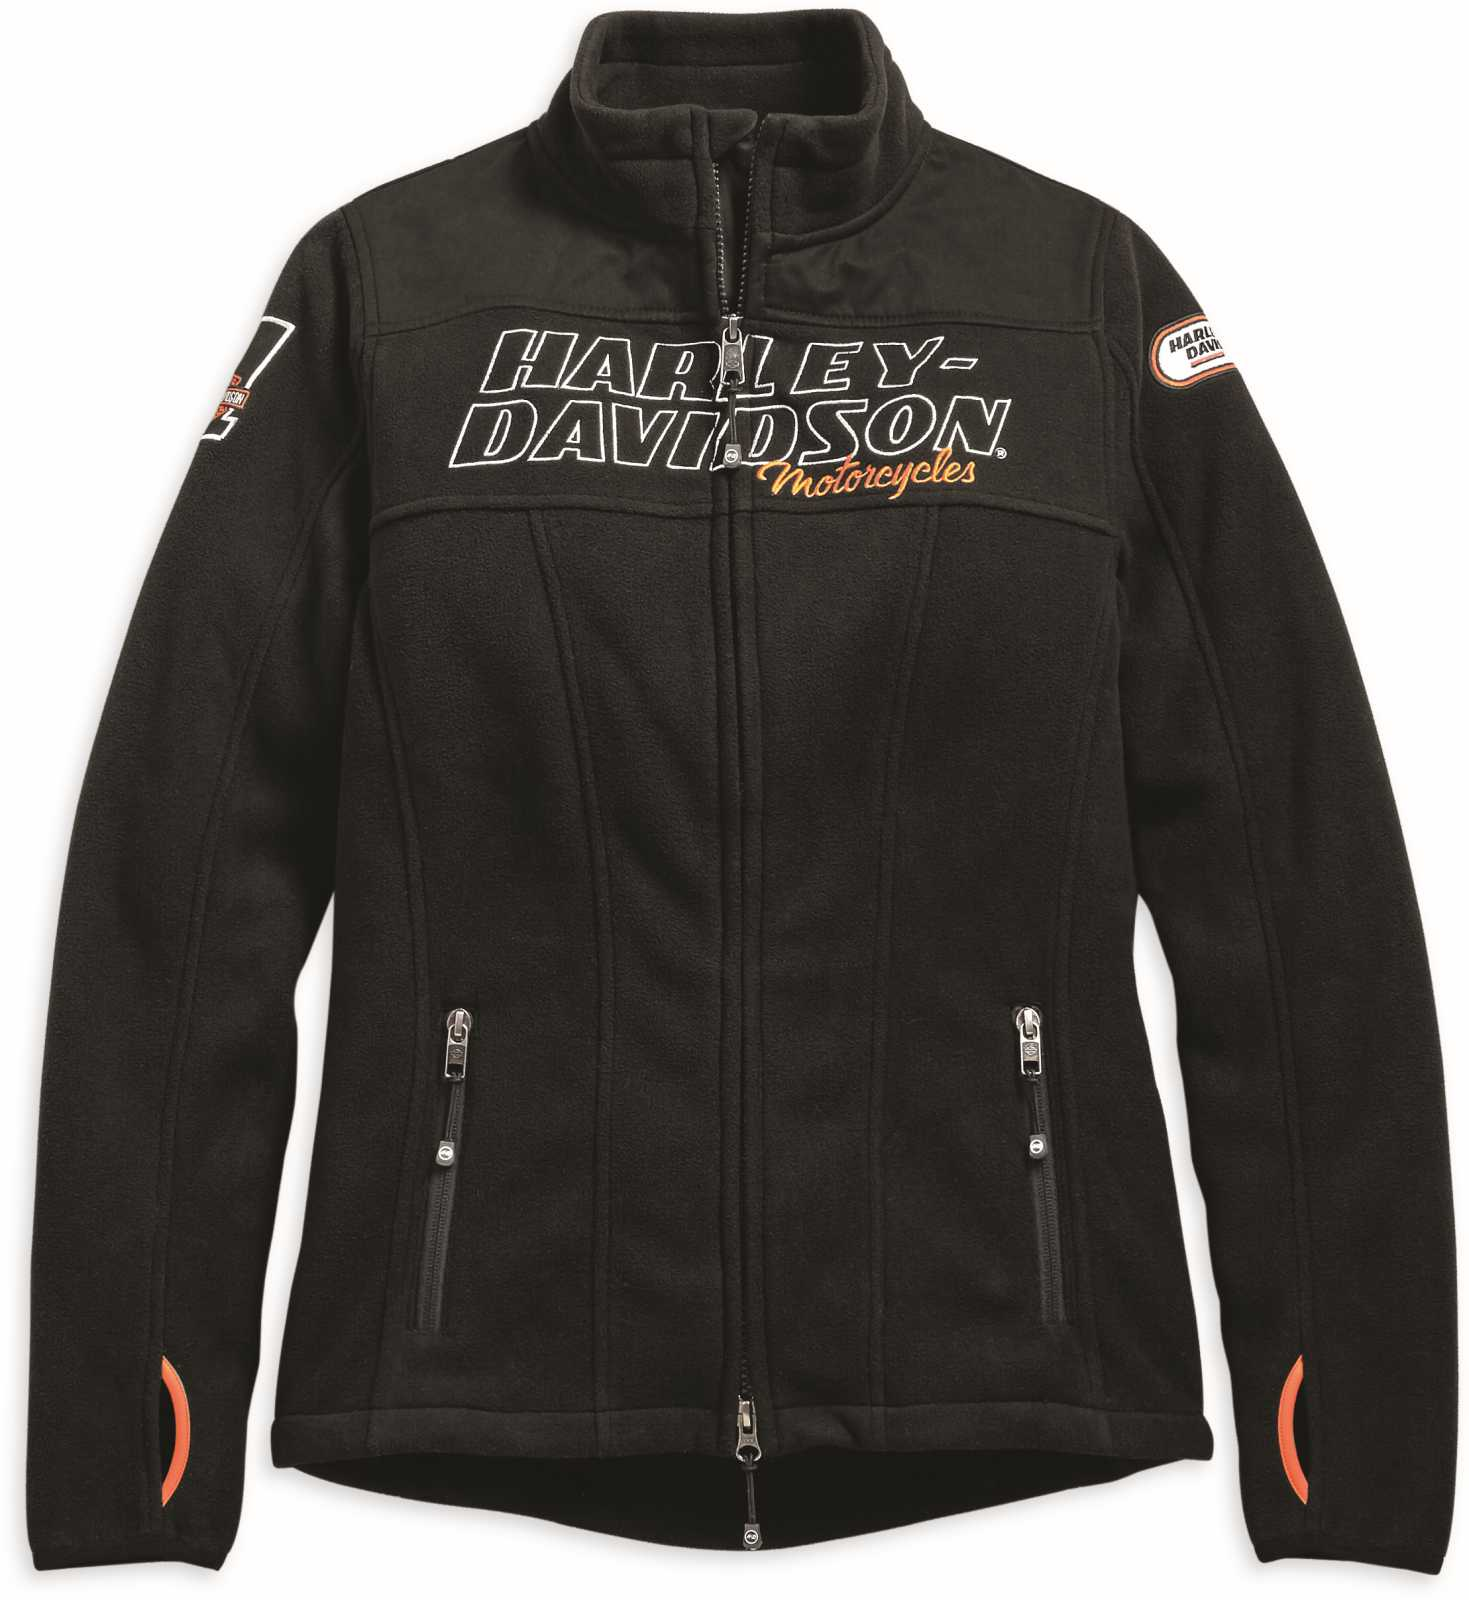 98598 19vw harley davidson damen fleece jacke racing im. Black Bedroom Furniture Sets. Home Design Ideas